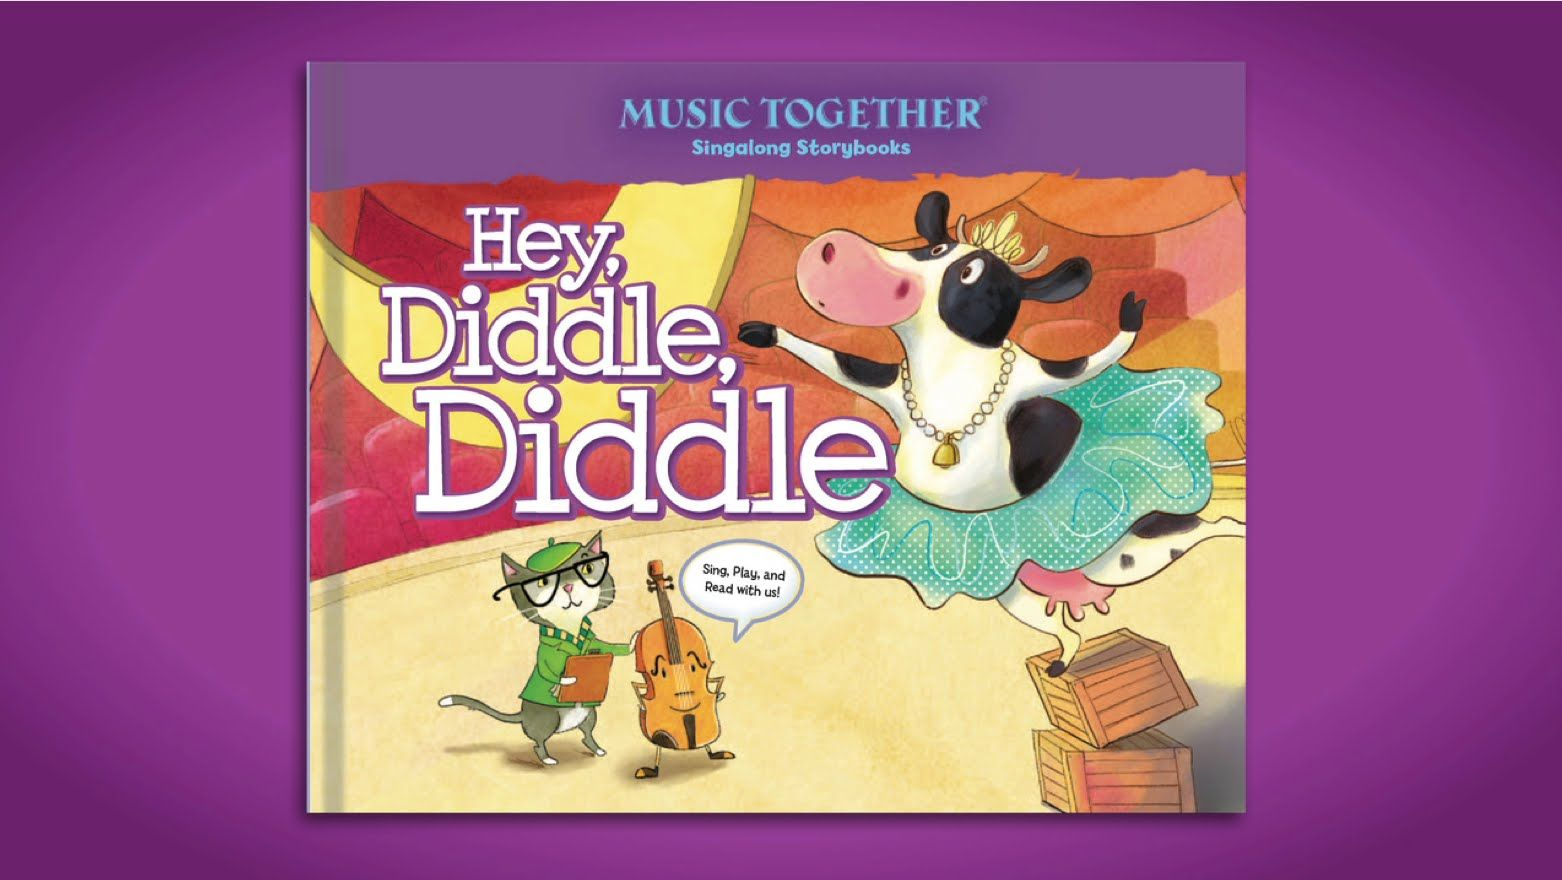 Hey Diddle Diddle Singalong Storybook Trailer